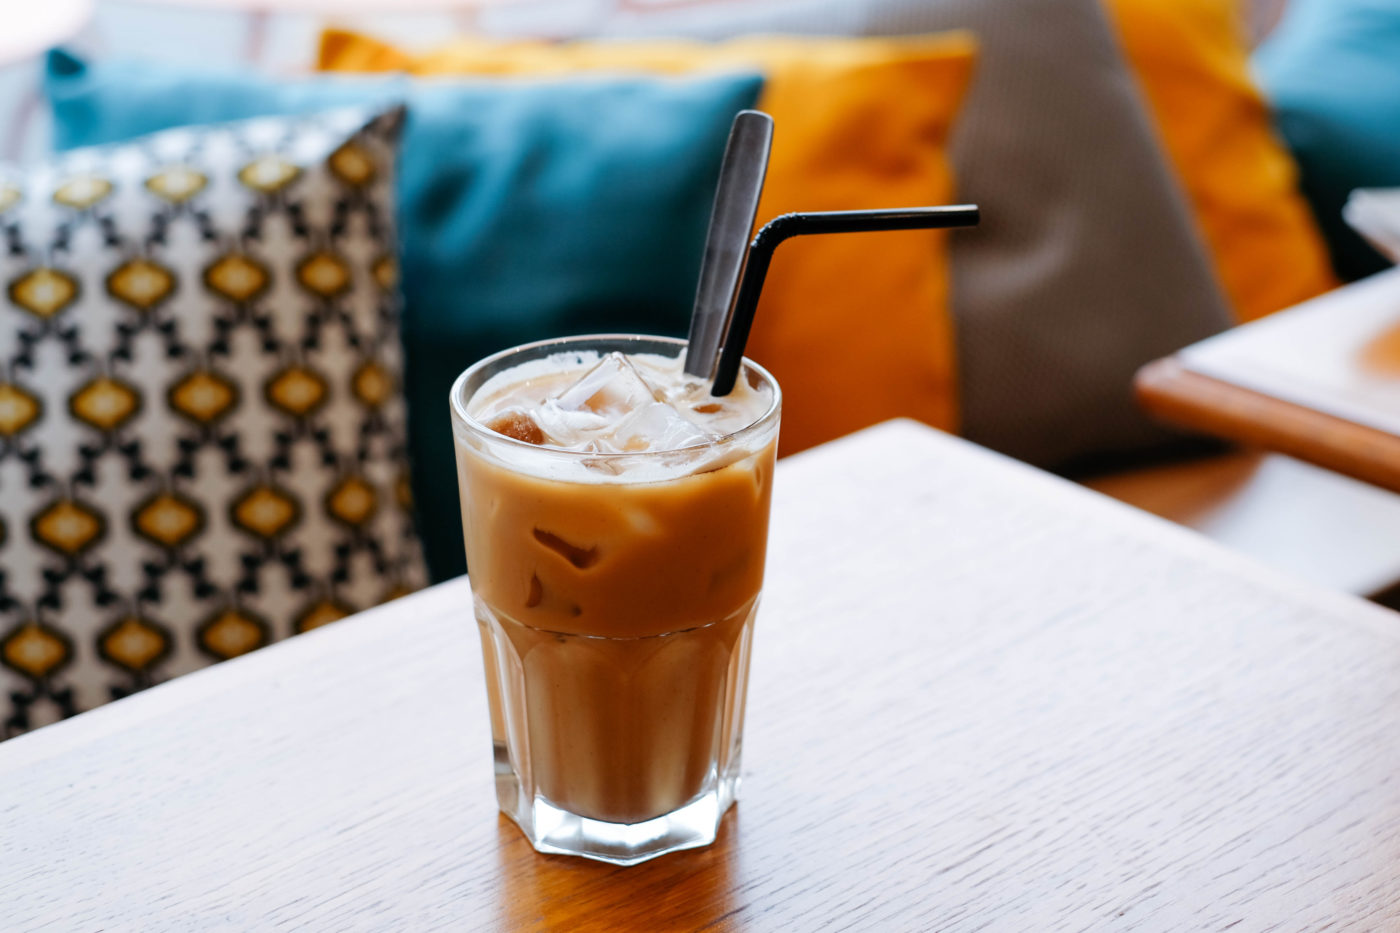 Celebrate ice coffee season with these recipes and coffee shops.